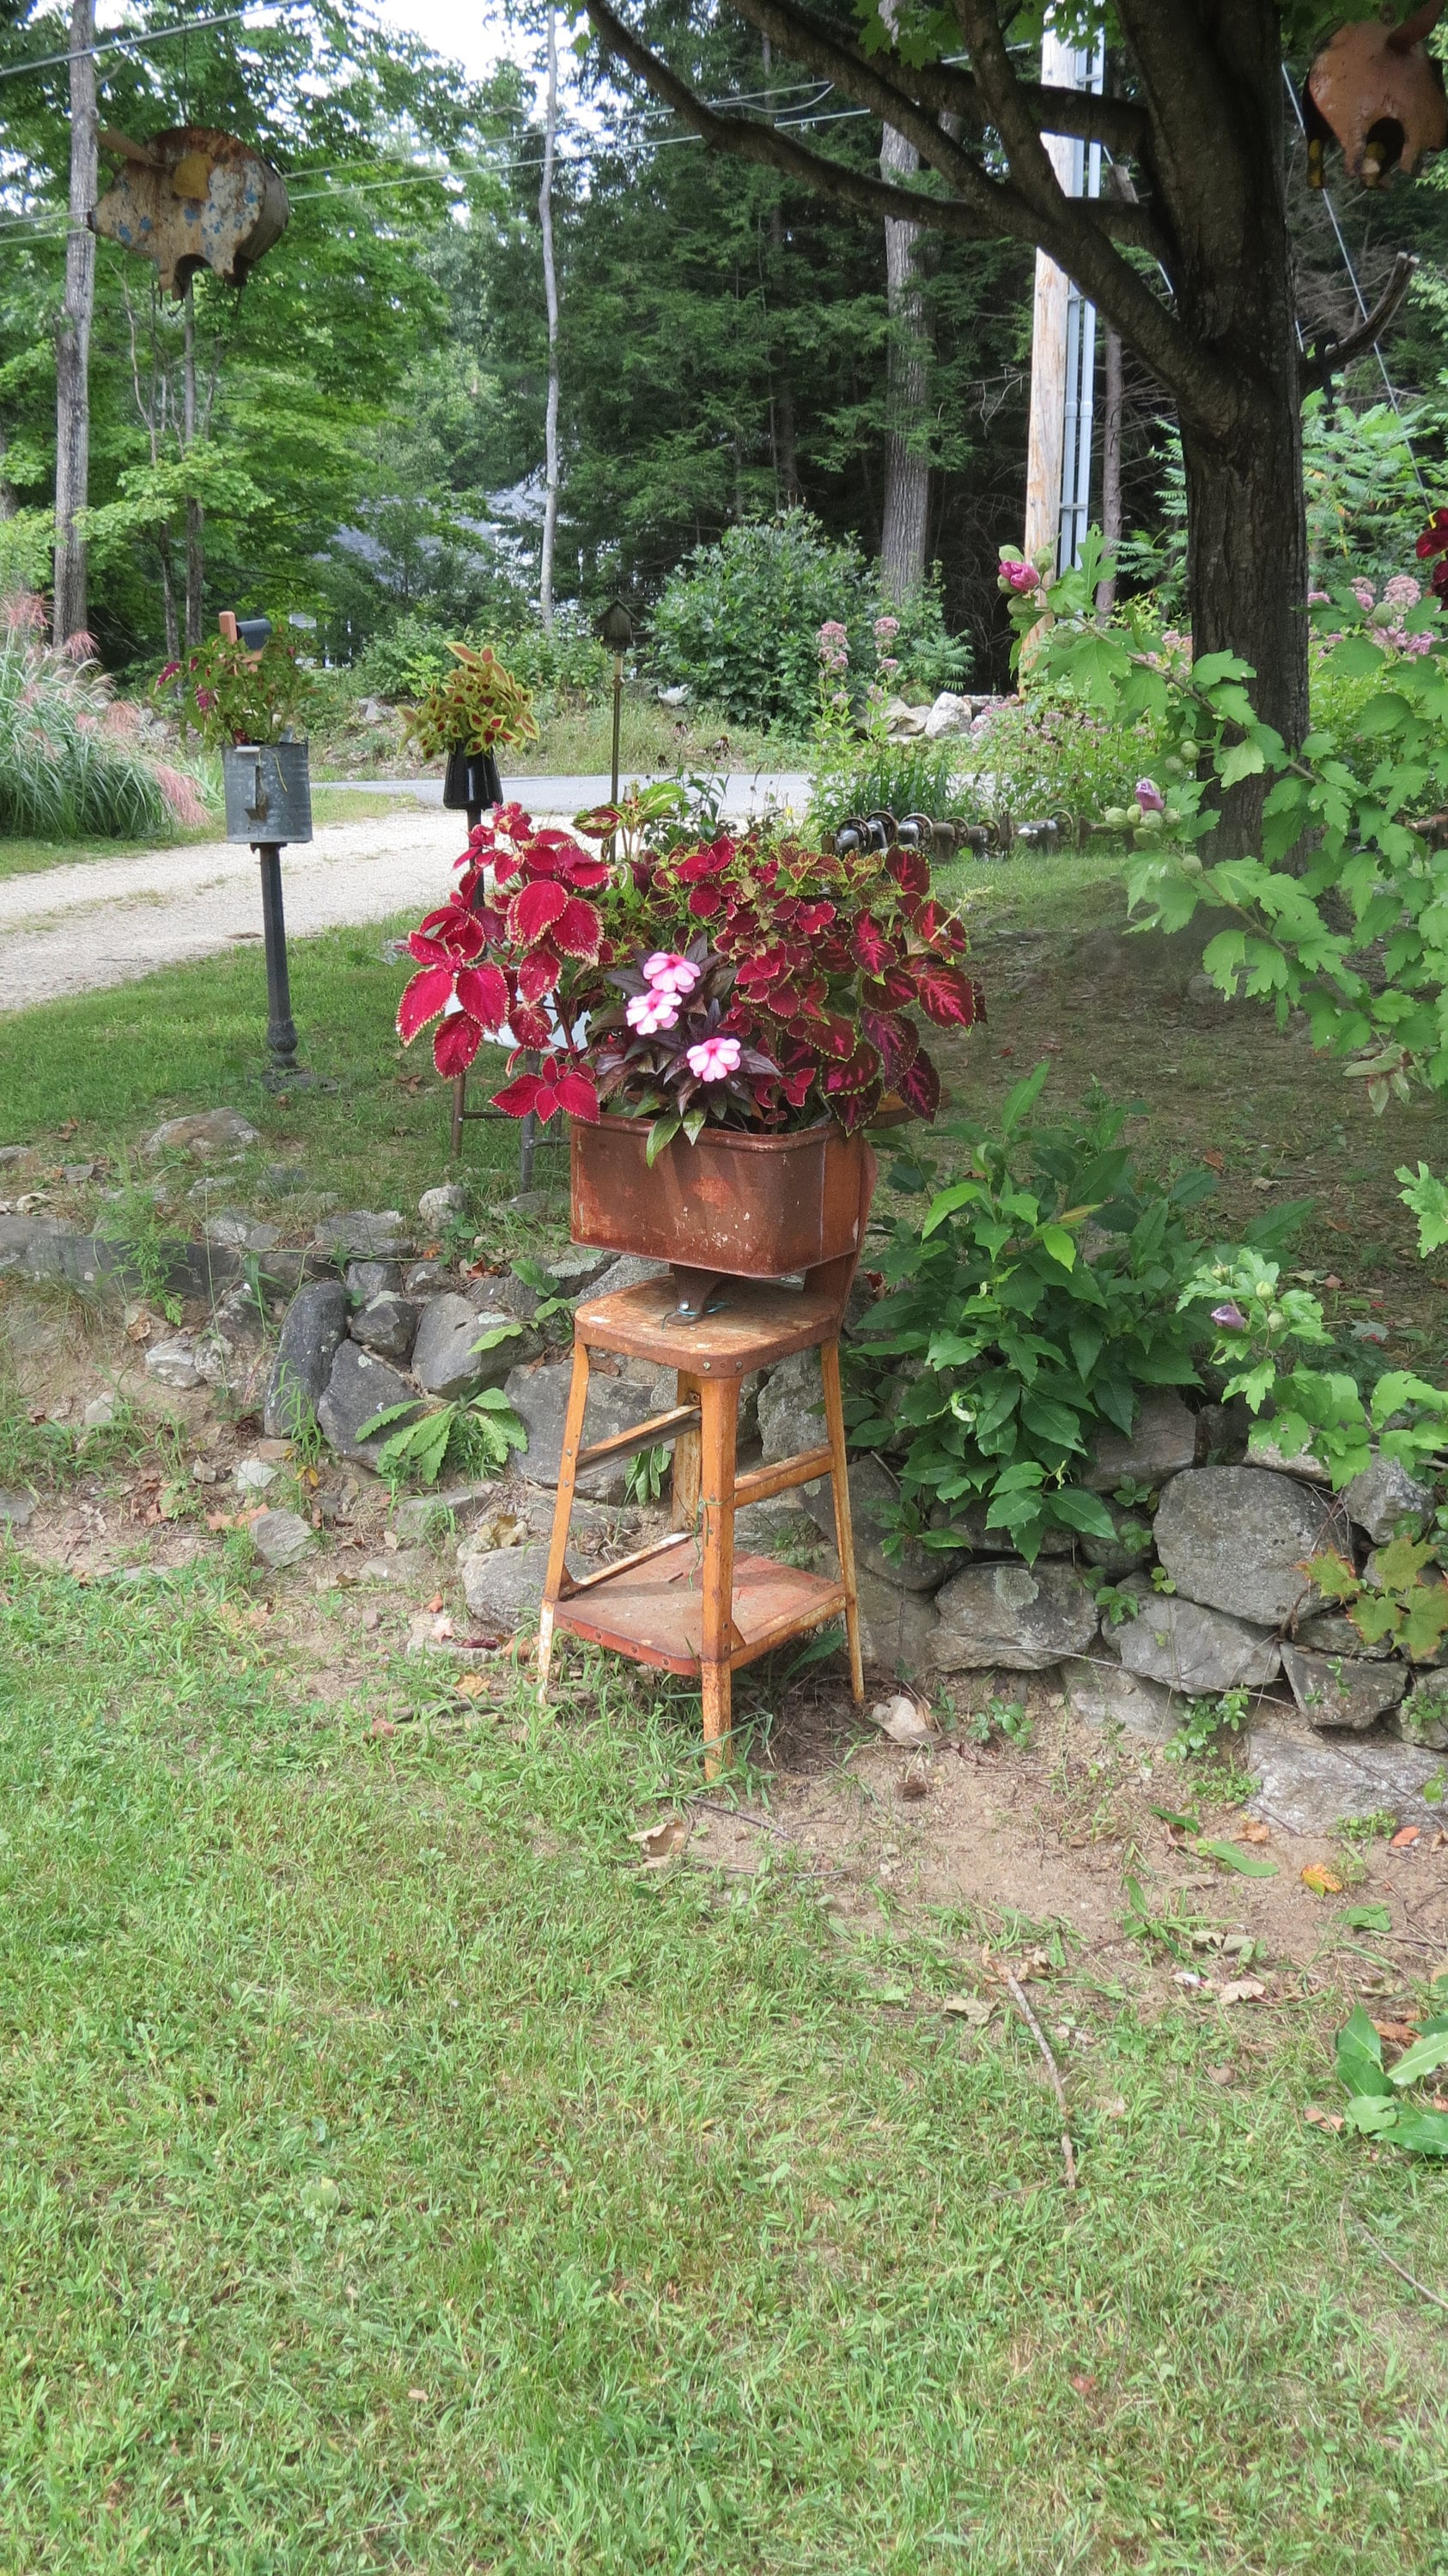 Repurposed Salvaged Planter with Vintage Rusty Metal Stool and